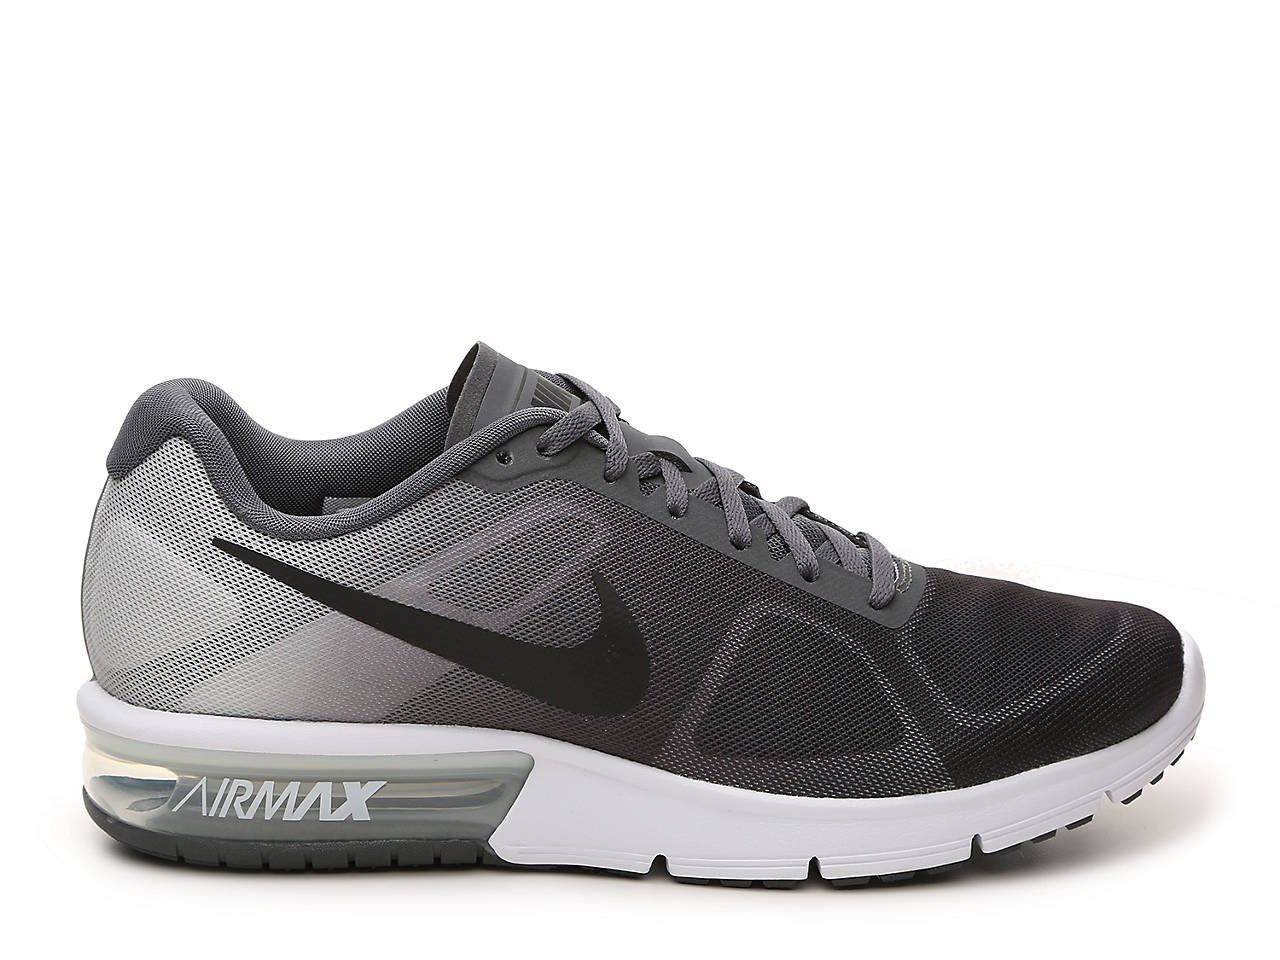 Previous Air Max Sequent Performance Running Shoe Men S